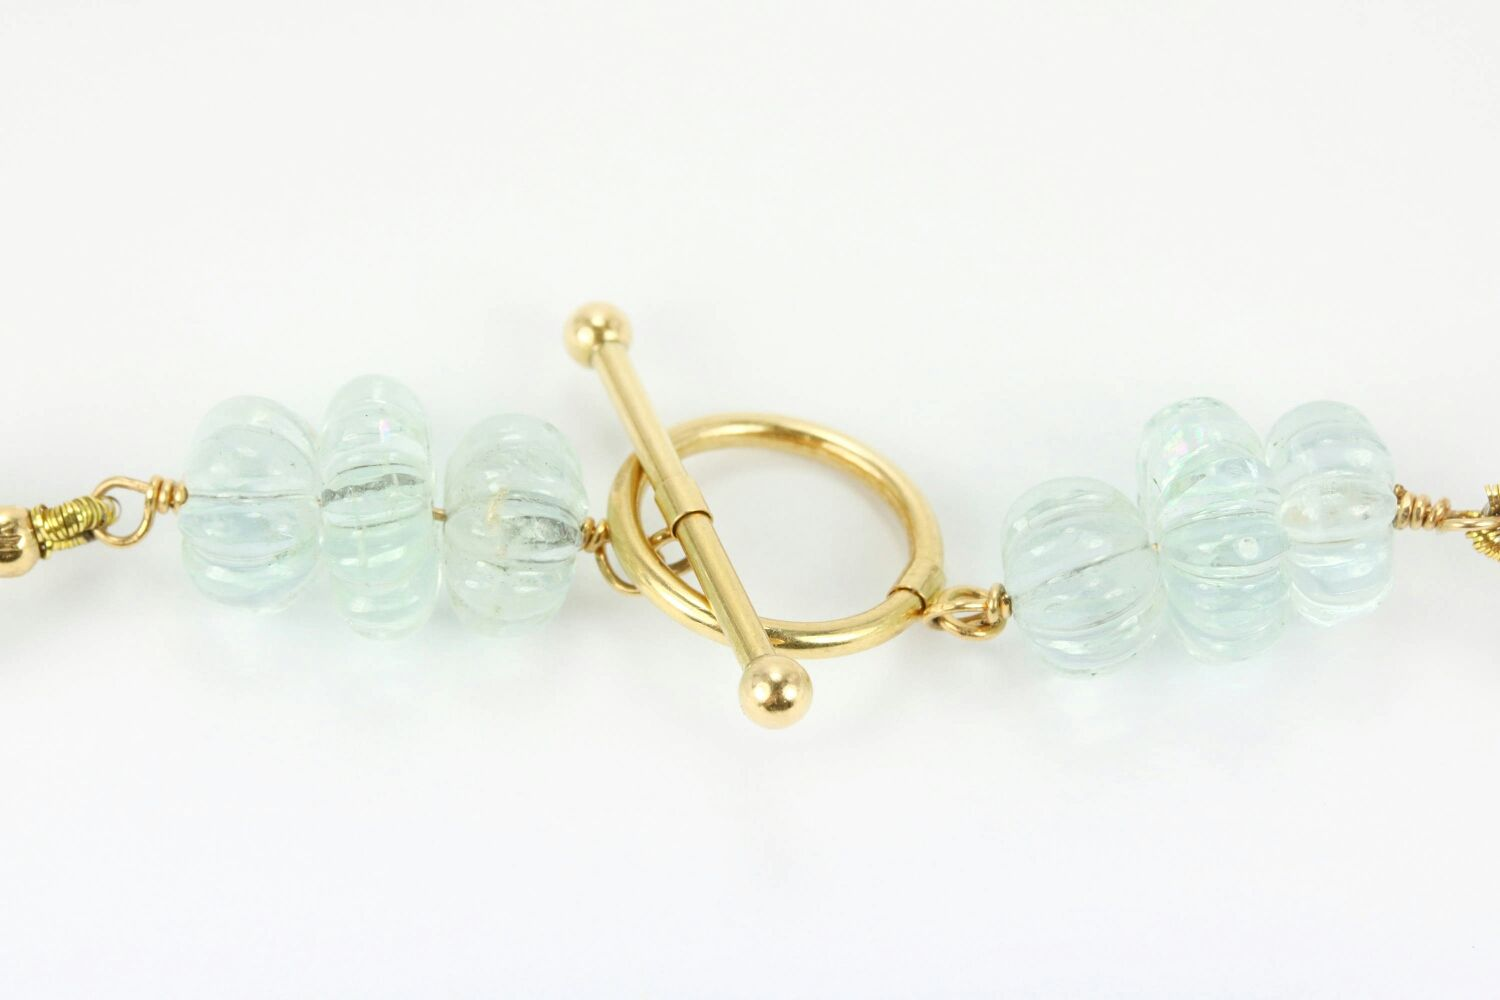 gold ring art style image sapphire deco jewellery aquamarine white and